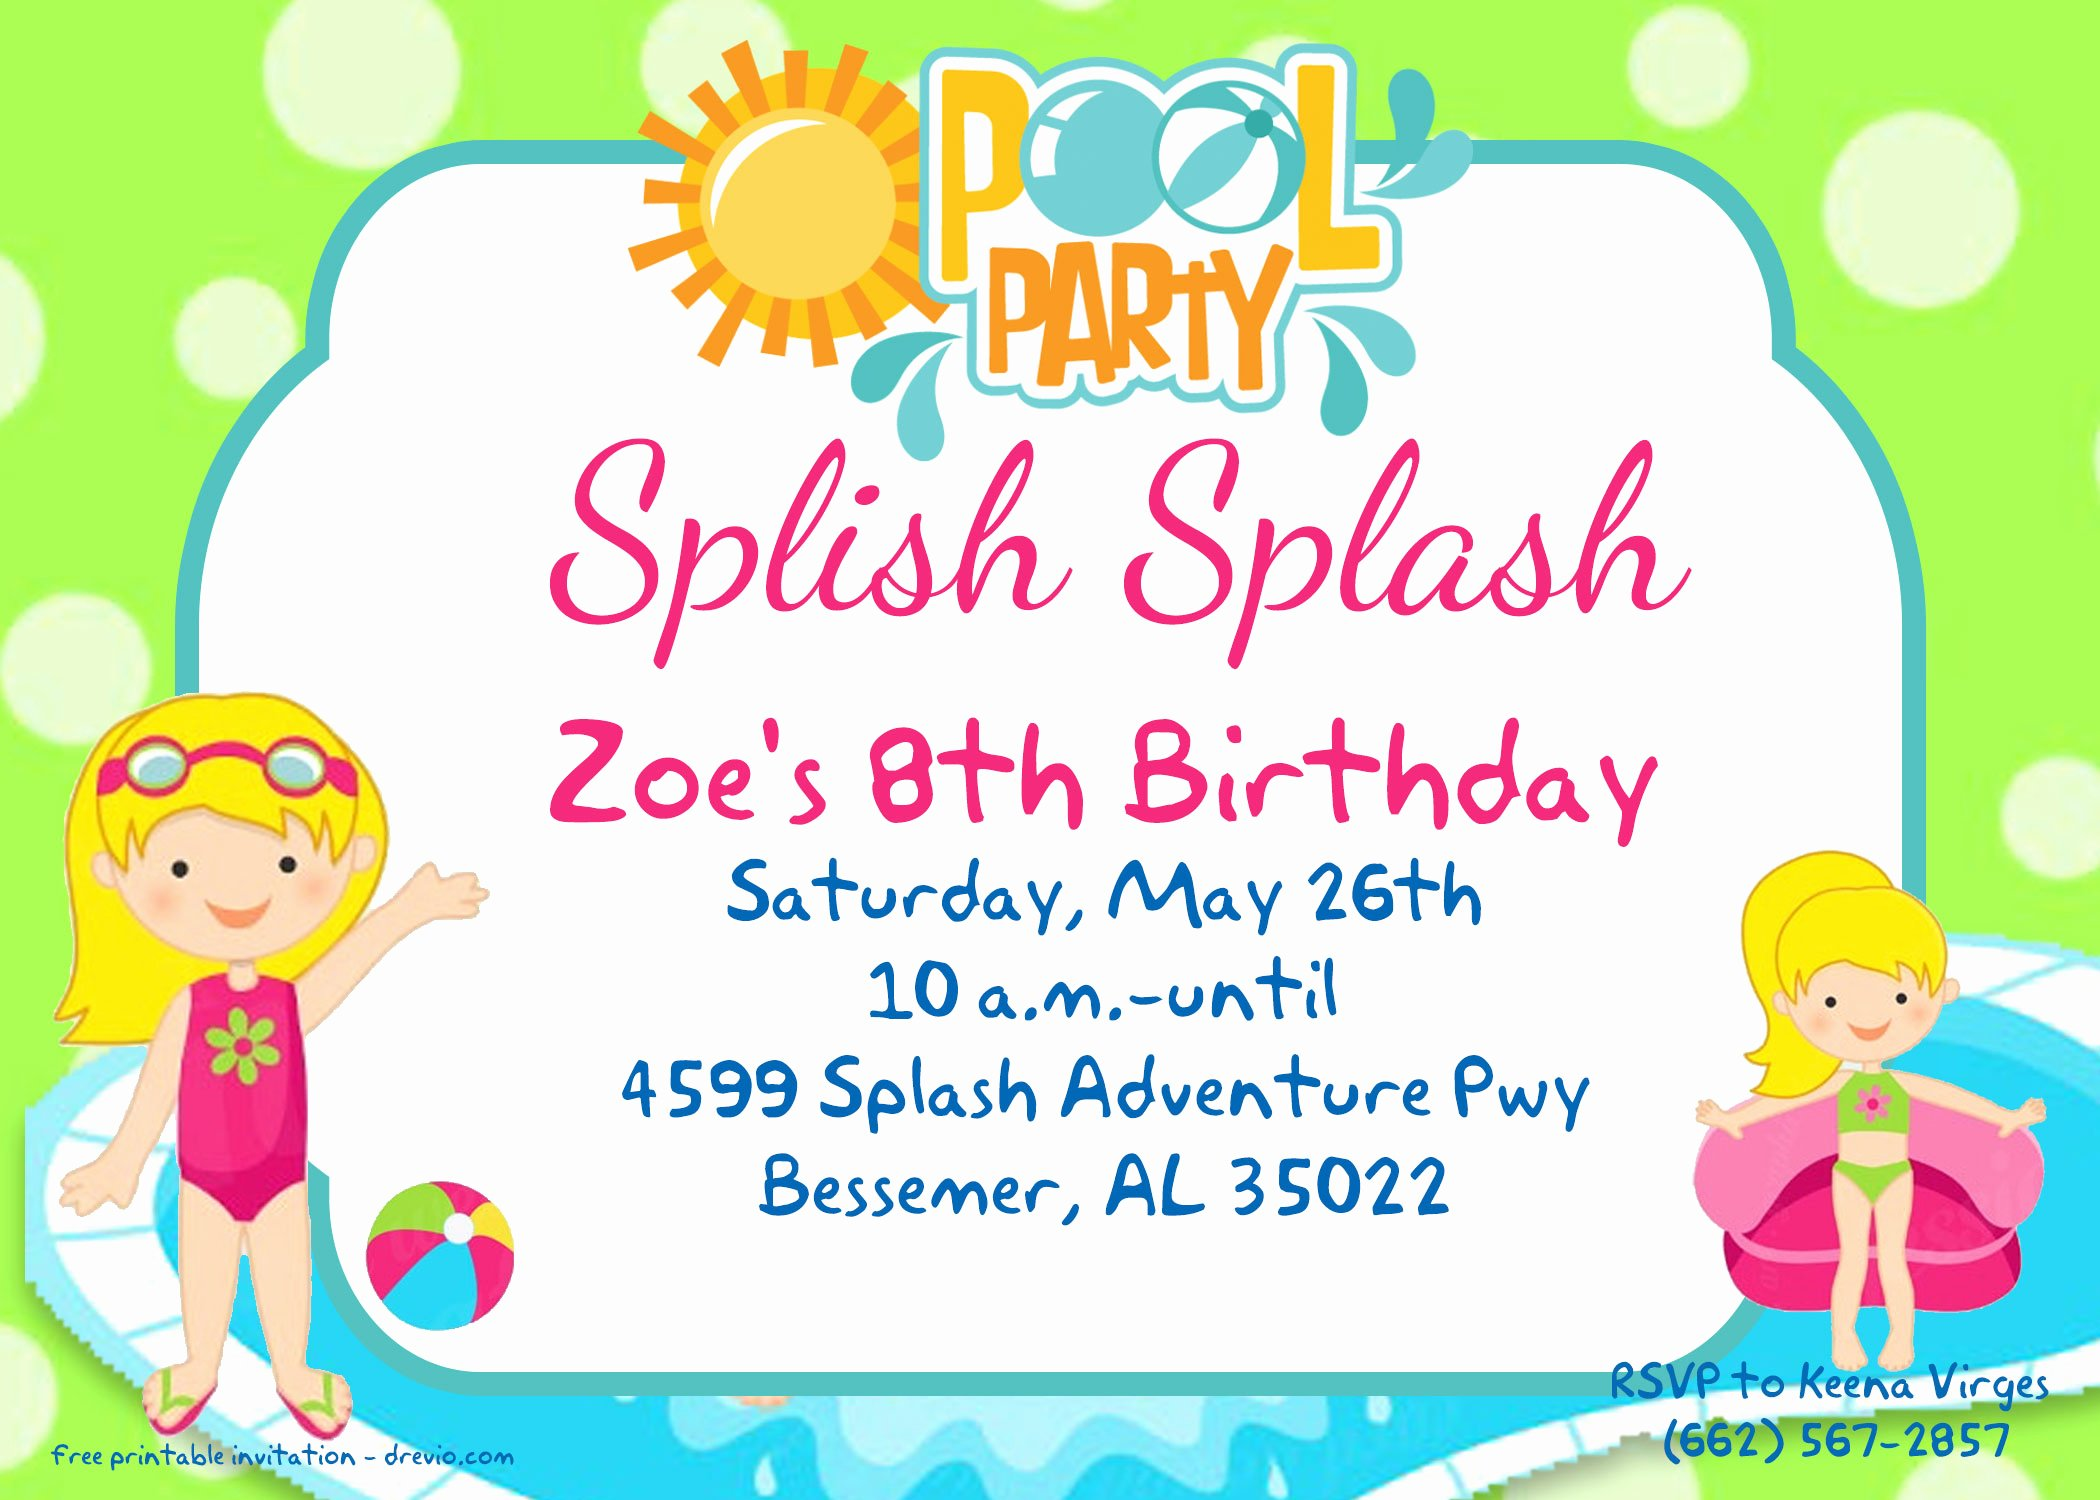 Blank Pool Party Invitations Awesome Free Printable Pool Party for Girls Invitations